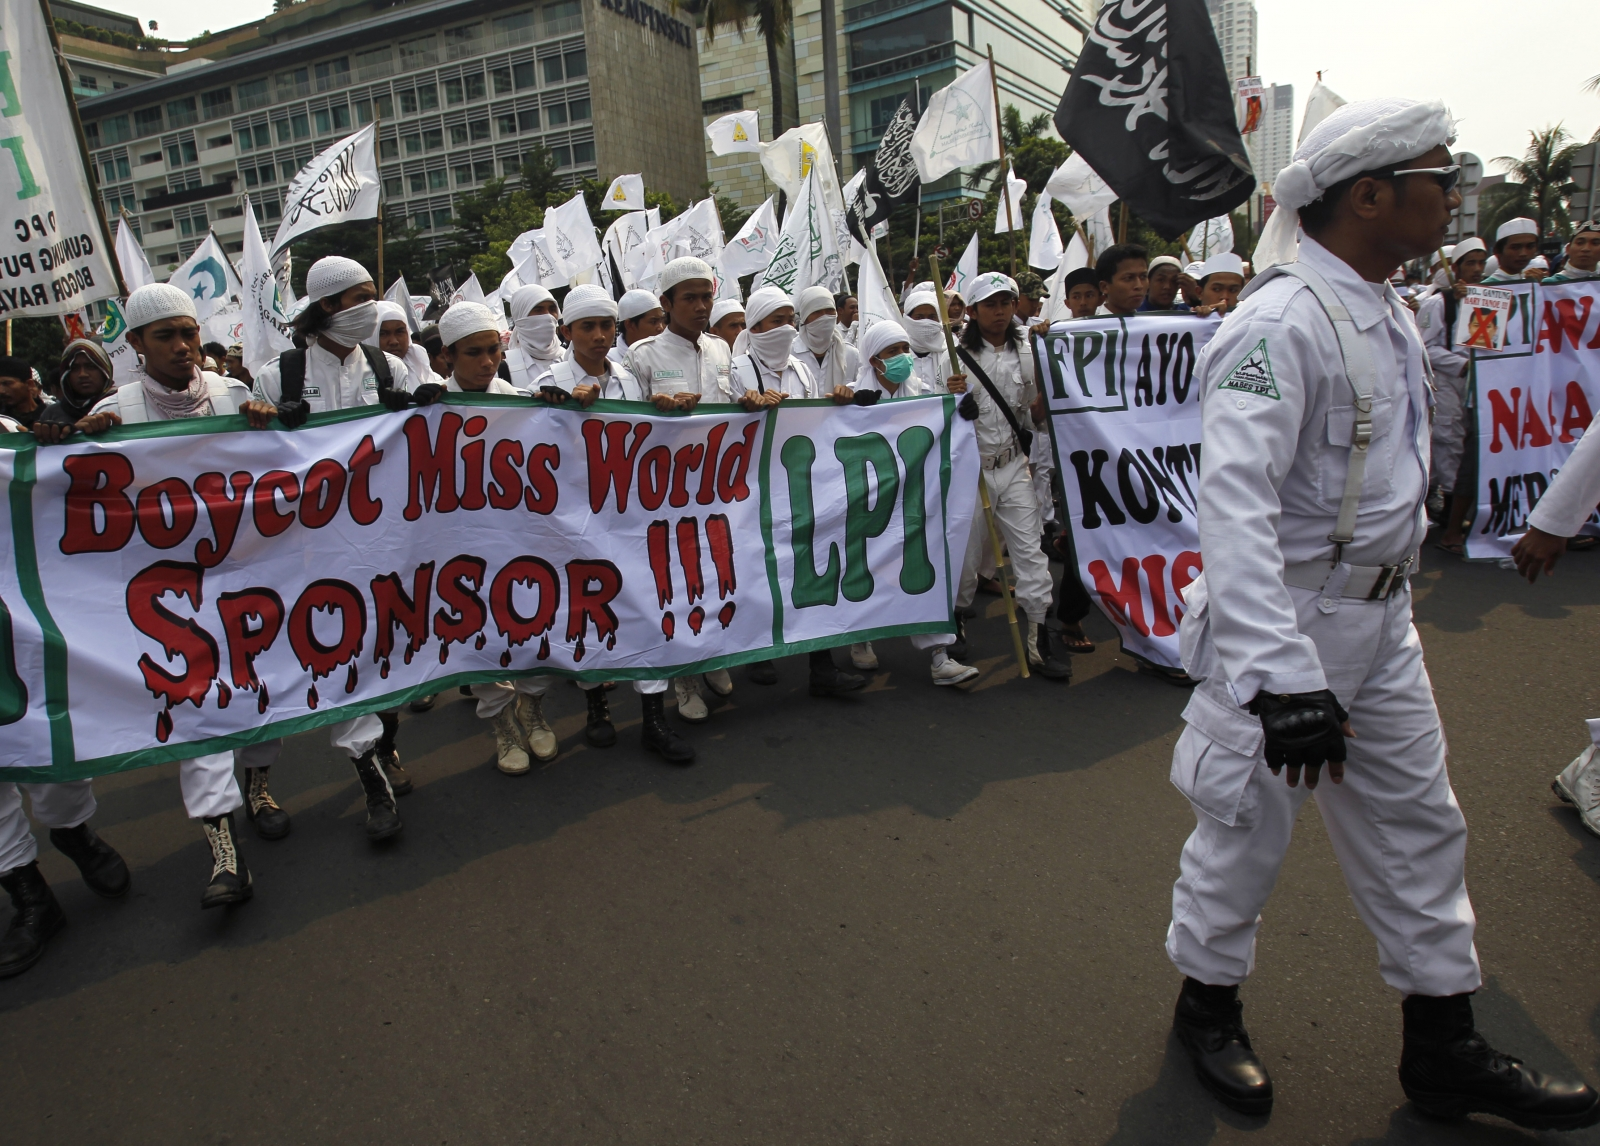 Indonesian hardliner Muslim protesters shout slogans during a protest against the Miss World pageant in Jakarta in 2013